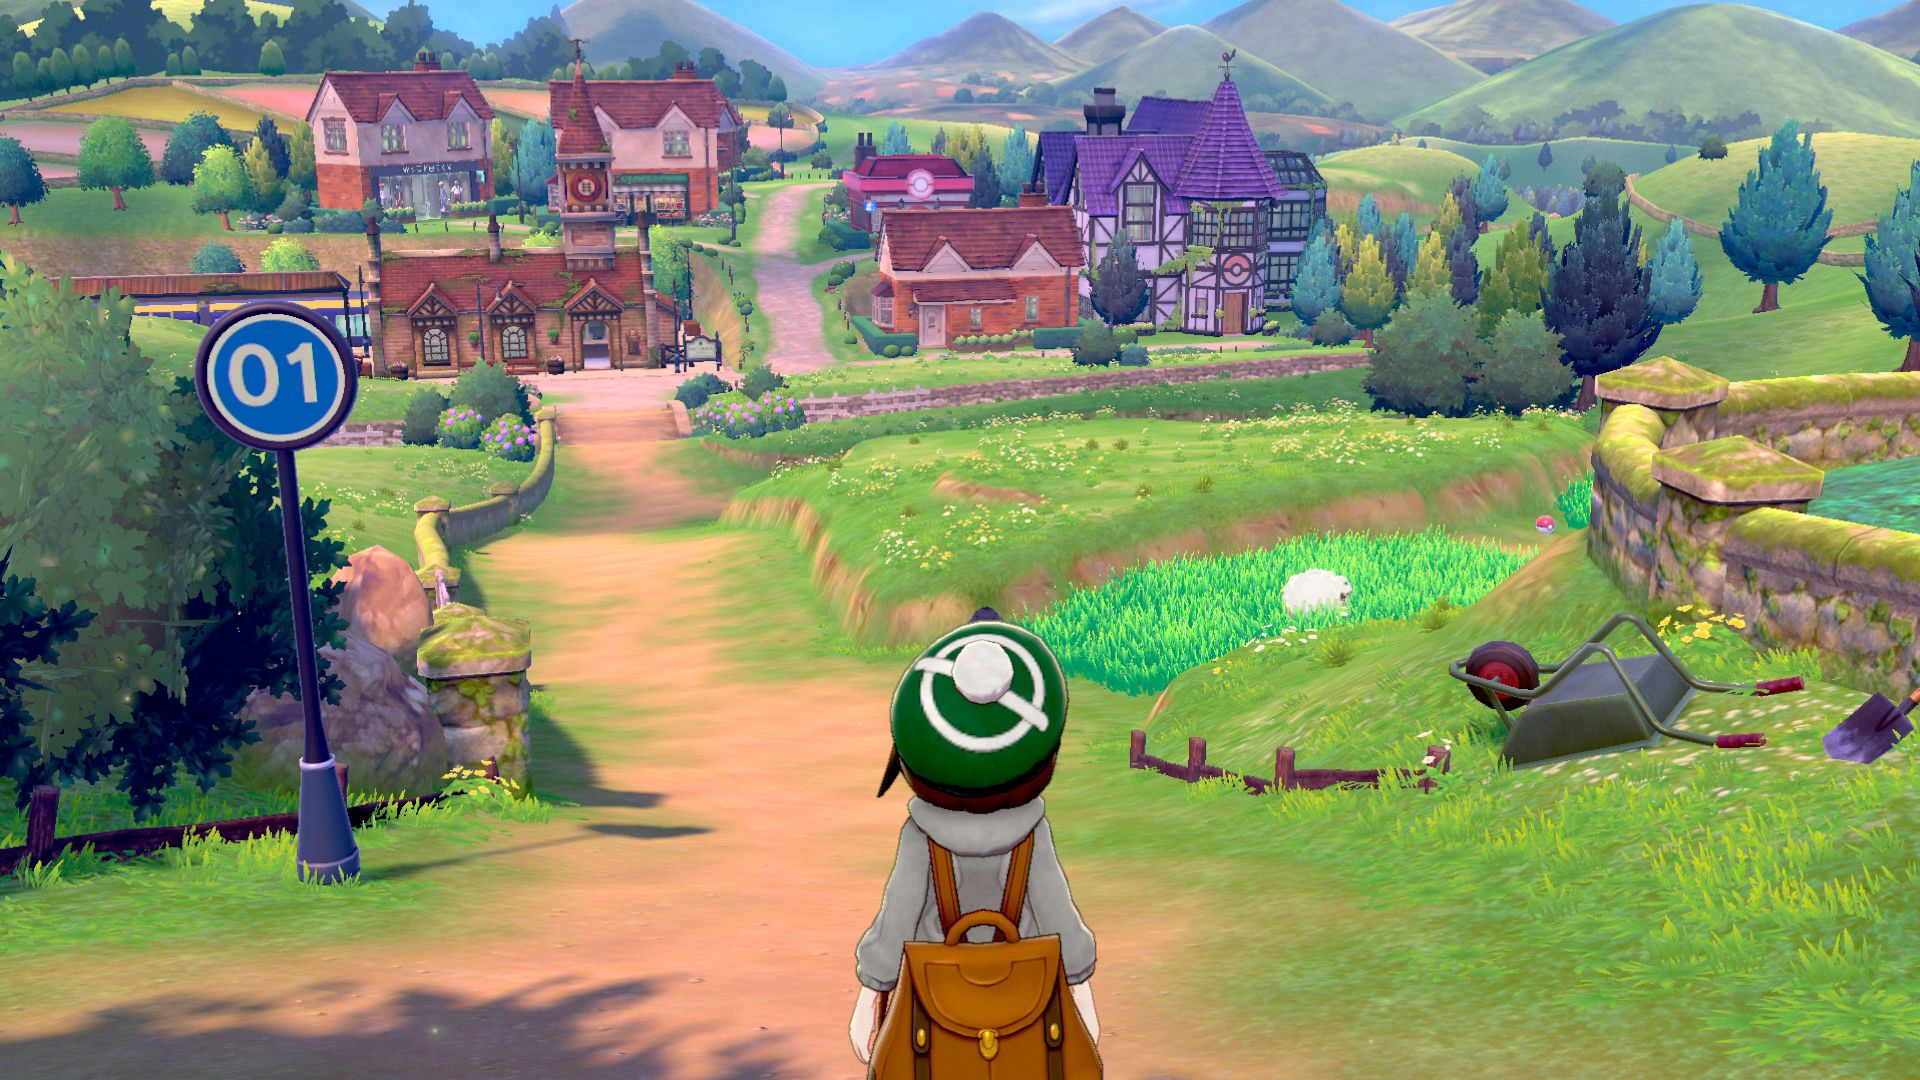 Pokémon Sword and Shield are getting DLC, a first for the series